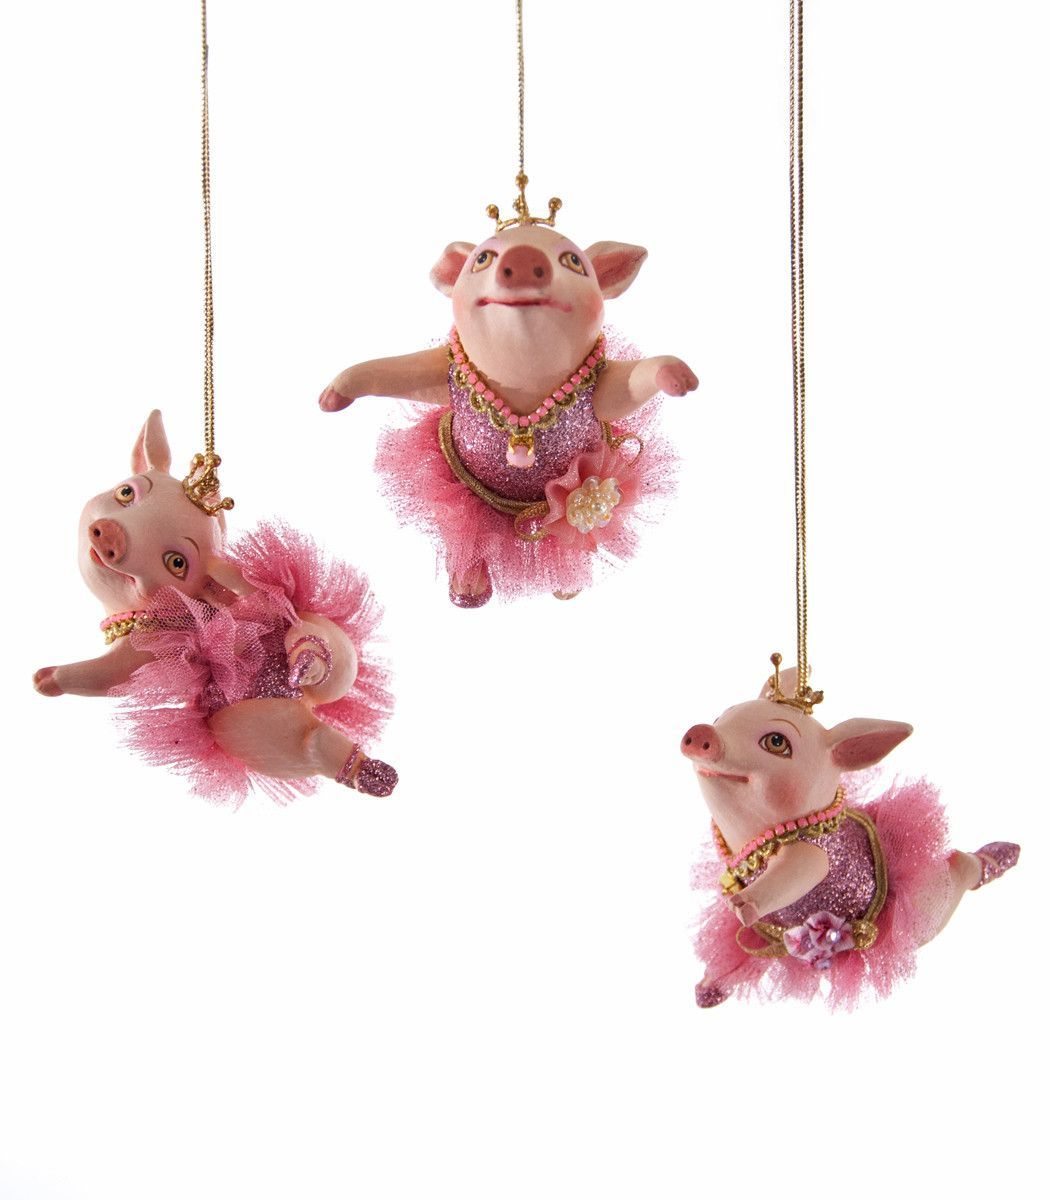 Pig christmas ornaments - Katherine S Collection Happily Ever After Christmas Collection Twelve 3 5 Pig Ballerina Ornaments